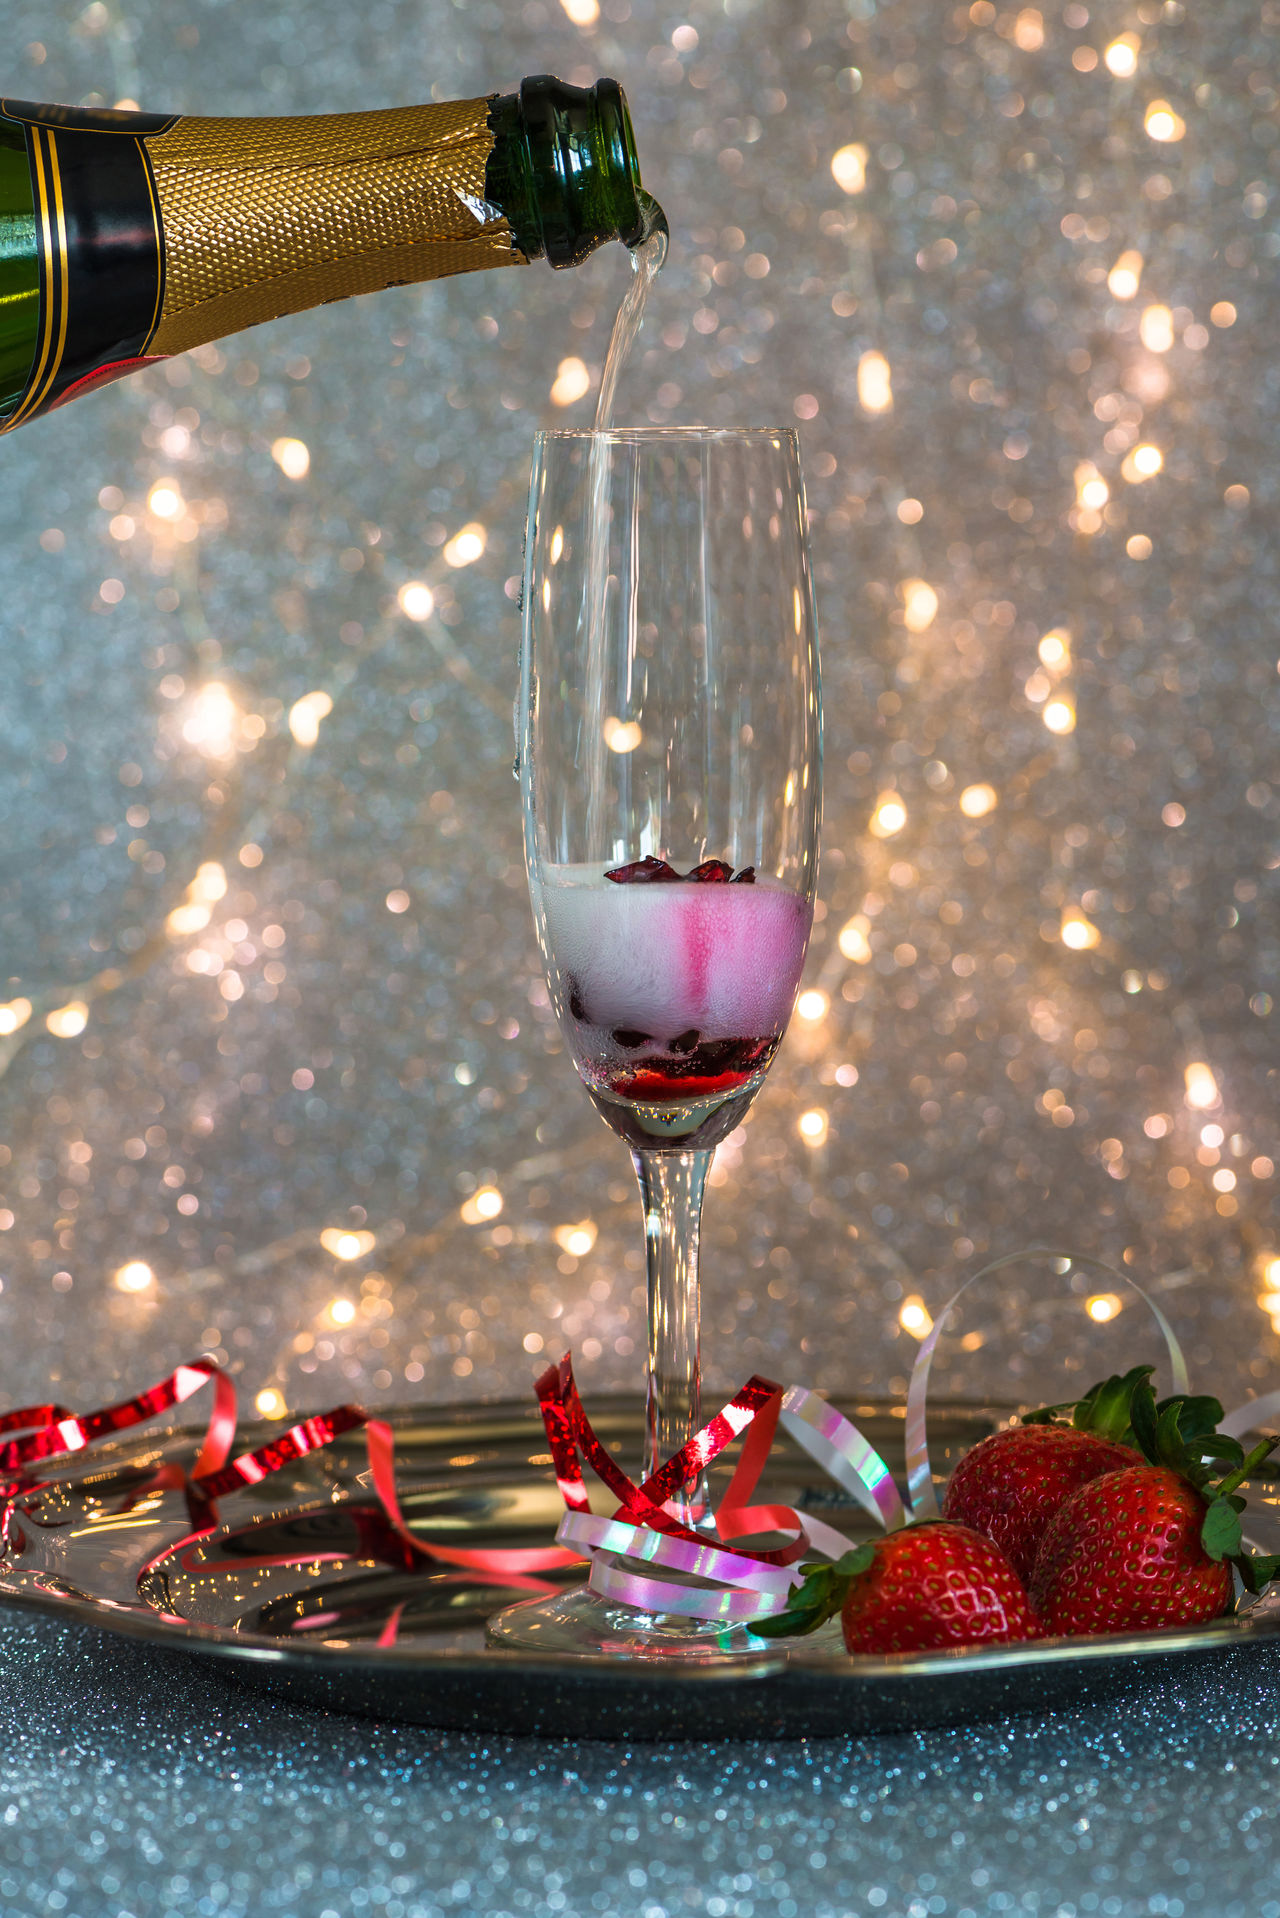 Champagne poured into glass with hibiscus flower inside and strawberries on festive background Background Beauty In Nature Birthday Celebration Bottle Of Champagne Bubbles Celebration Champagne Champagne Flute Champagne Glasses Christmas Festive Background Glass Hibiscus Flower New Year Celebration Portrait Pour Pouring Sparkle Strawberries